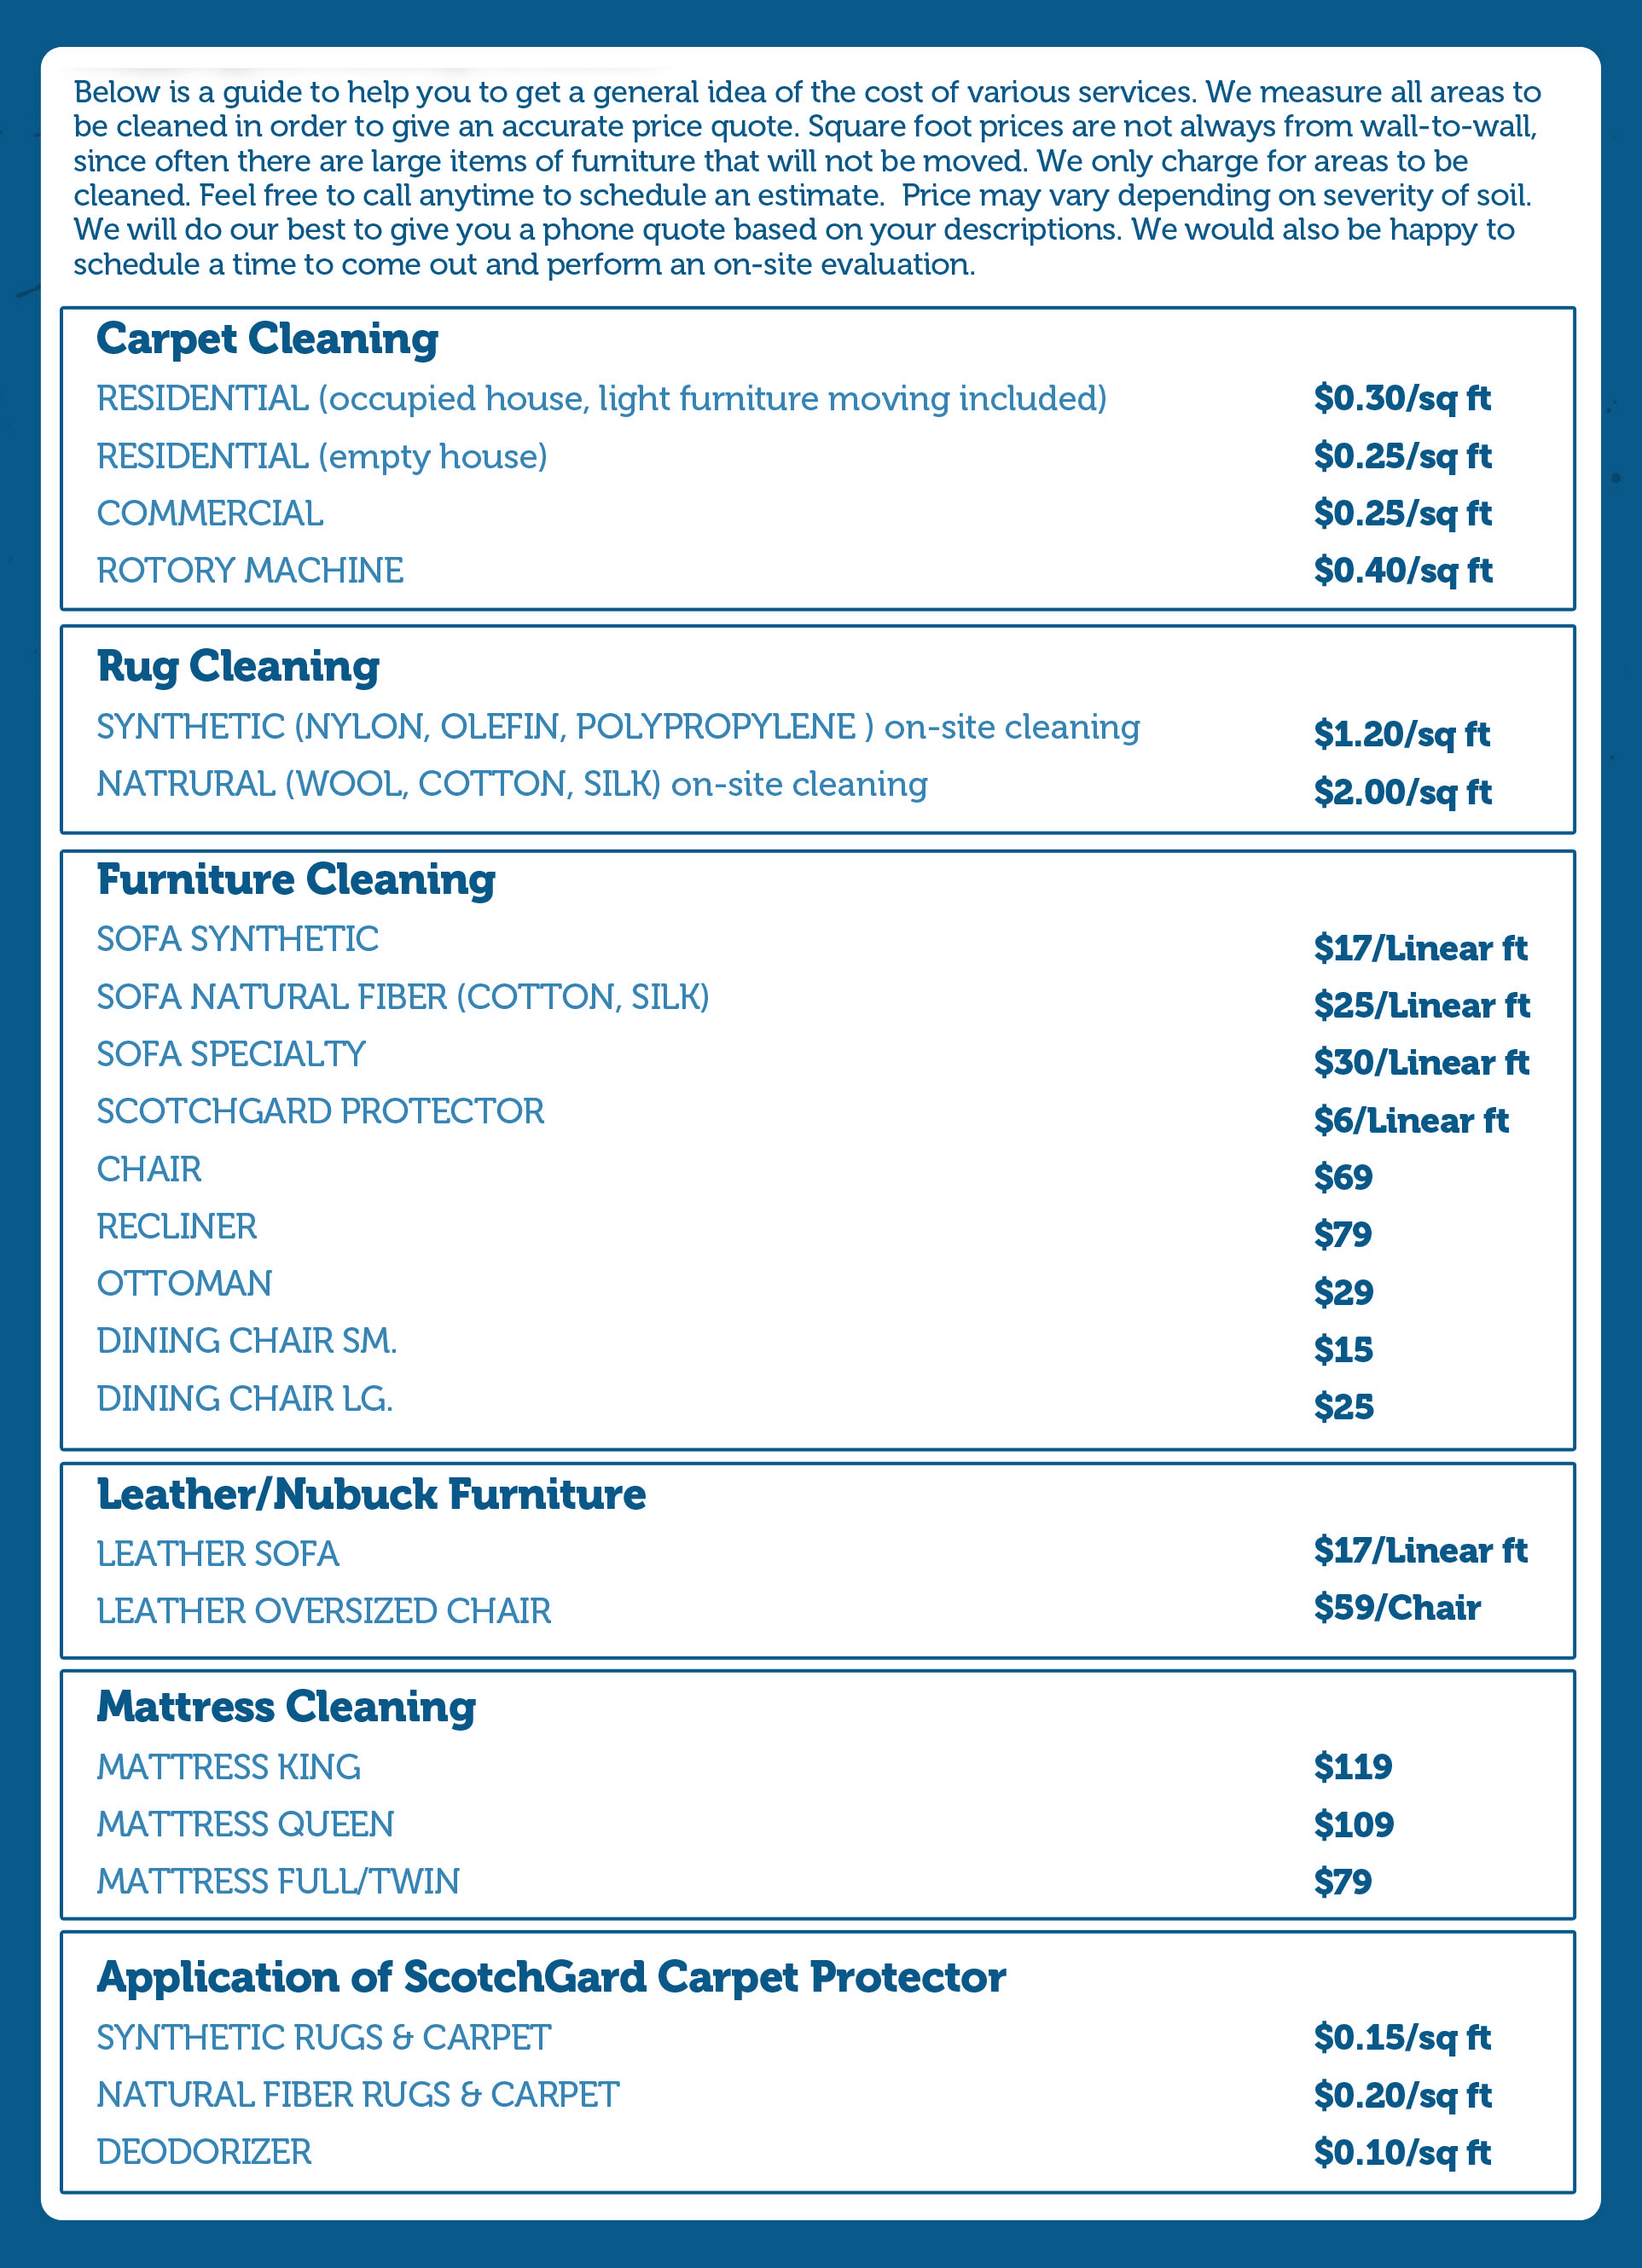 How Much To Charge For Carpet Cleaning Services - Carpet ...